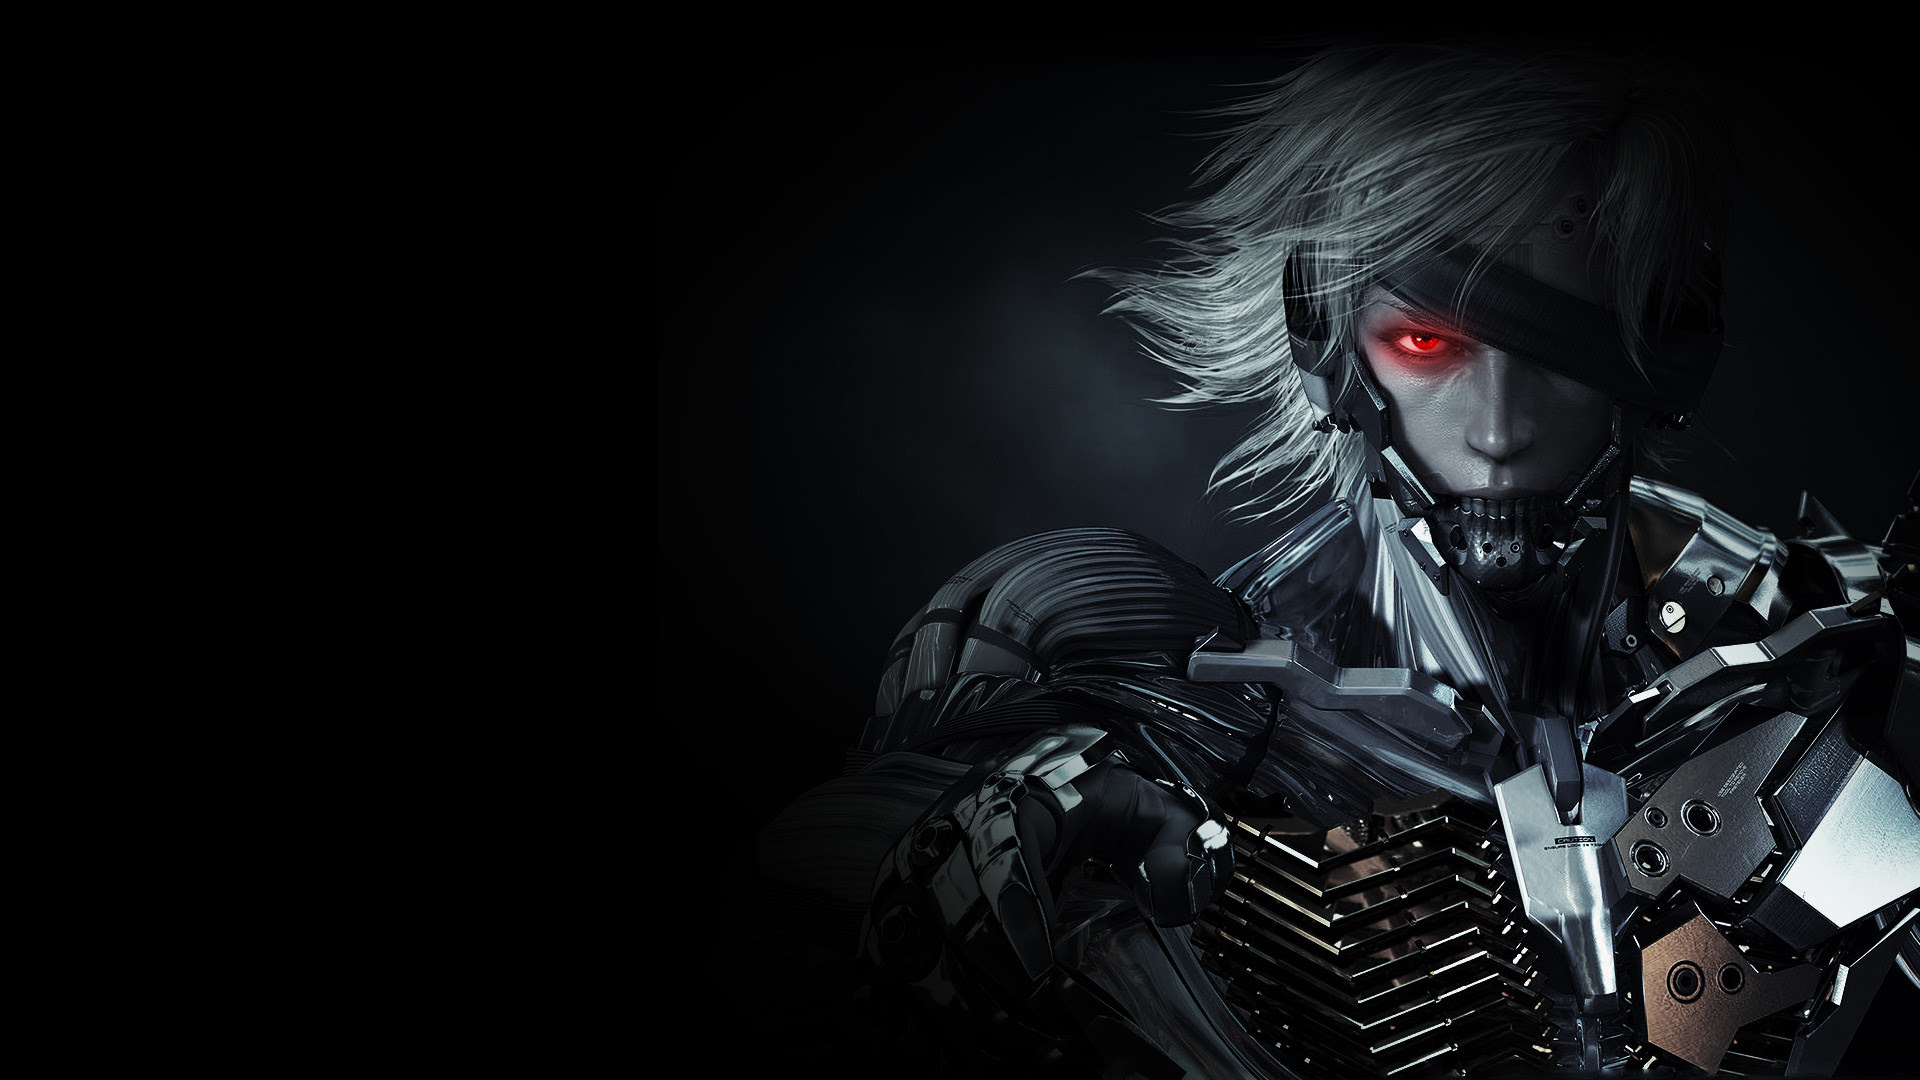 Metal Gear Solid Rising Wallpapers (77+ images)